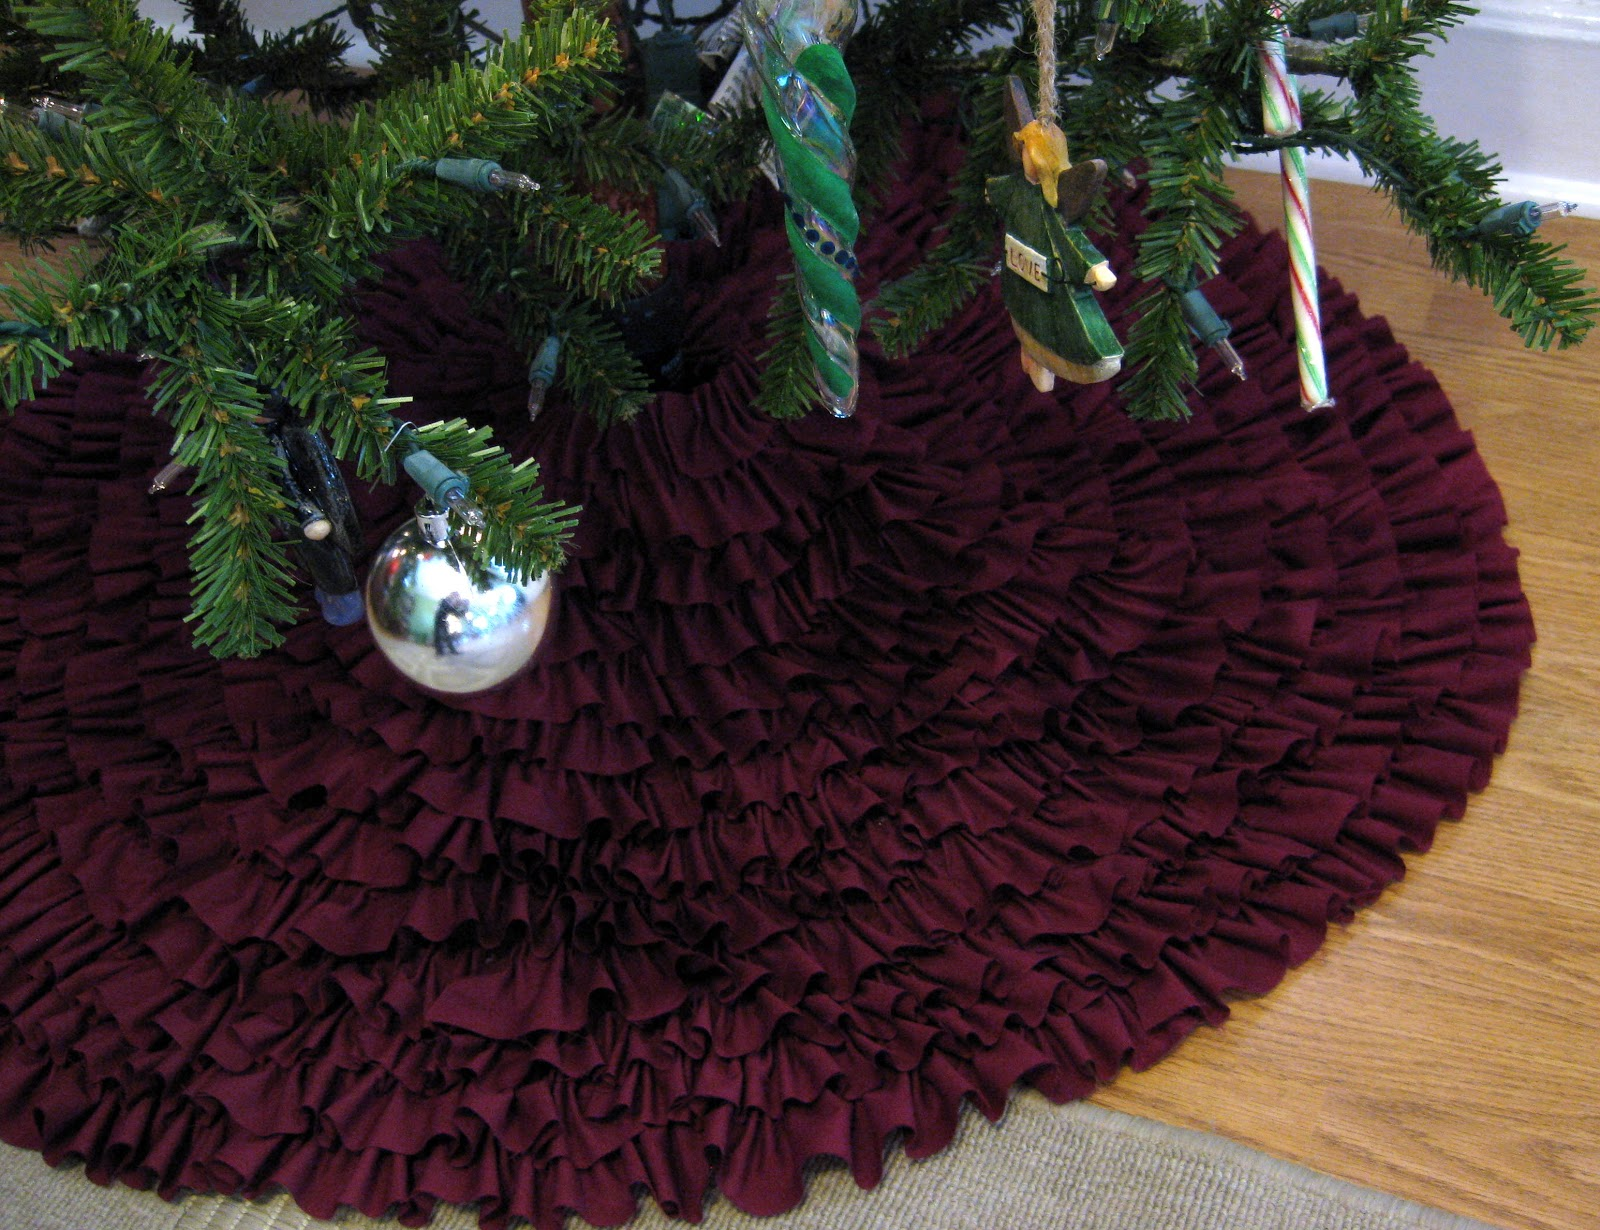 Making a Living: Make: No-Sew Ruffle Tree Skirt